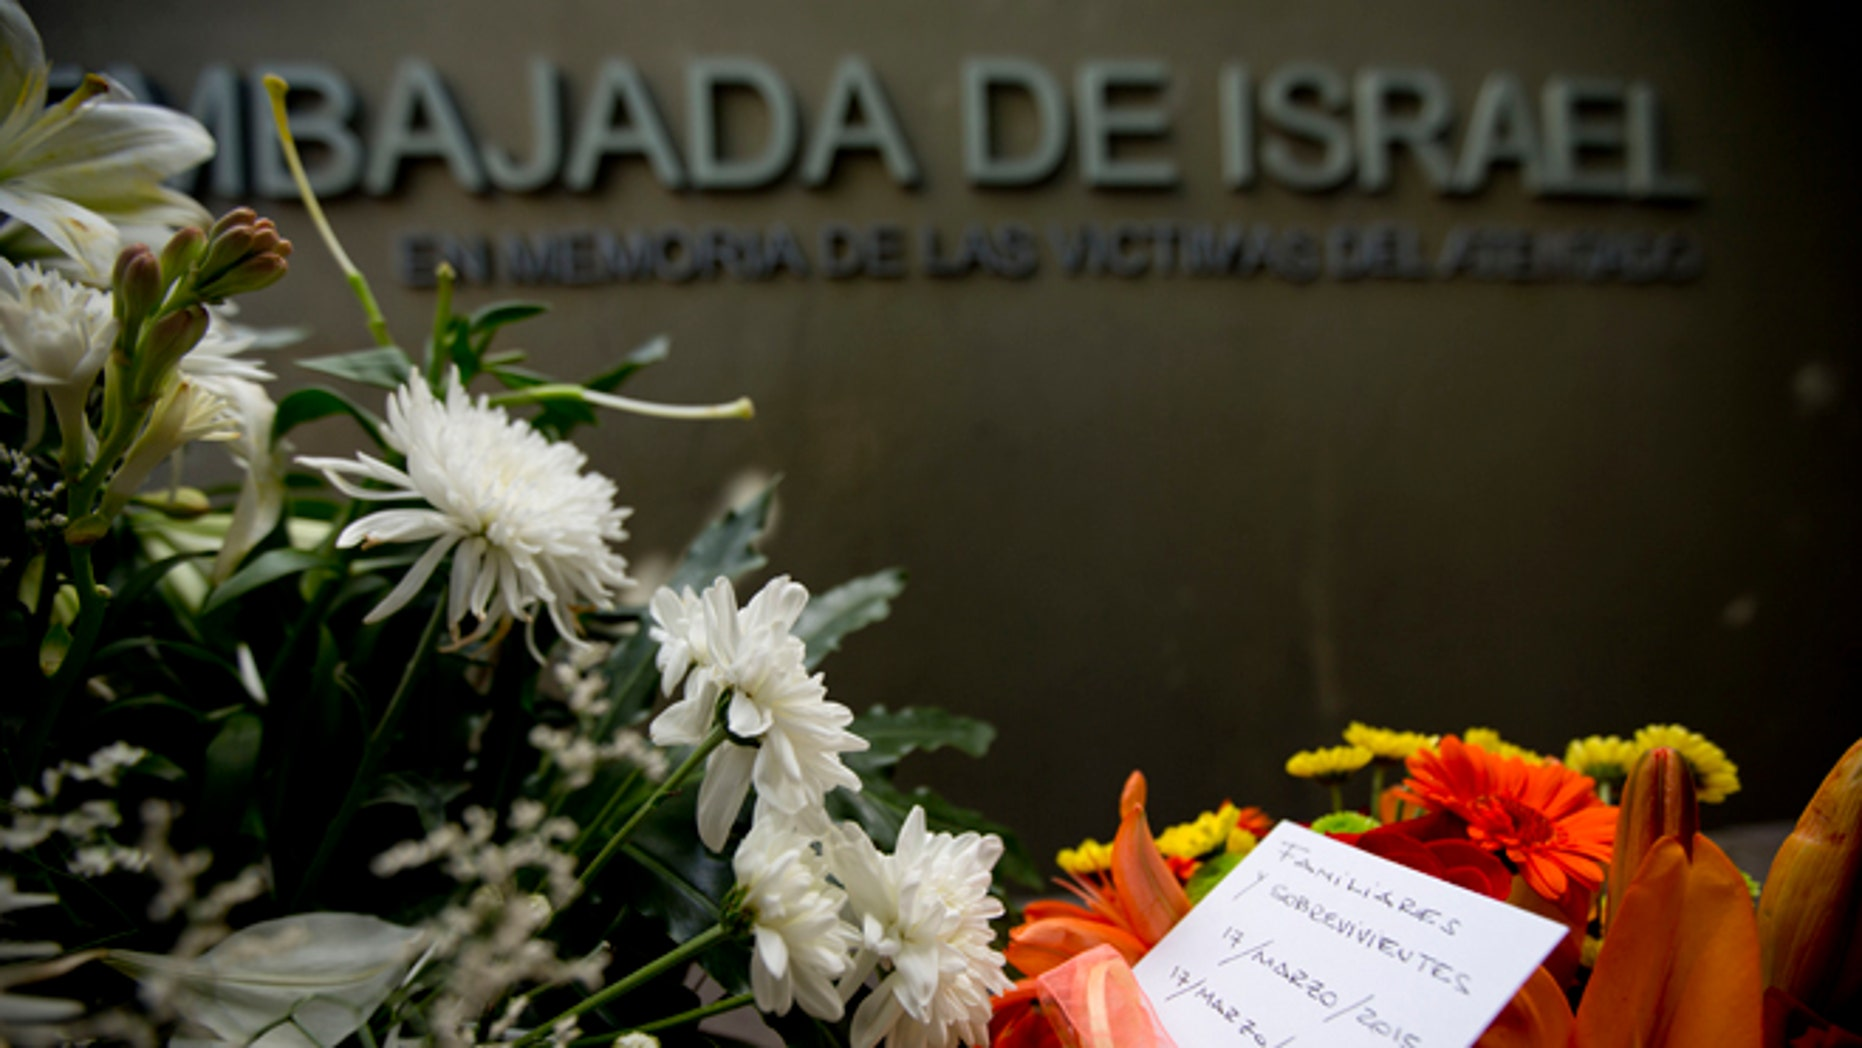 """A piece of paper reading in Spanish """"Relatives and survivors, March 17, 2015, March 17, 1992"""" is placed on floral arrangements that sit where the Israeli Embassy used to be, during an act to commemorate the 23rd anniversary of the bomb attack that destroyed the Israeli Embassy building killing 22 people in Buenos Aires, Argentina, Tuesday, March 17, 2015. (AP Photo/Natacha Pisarenko)"""